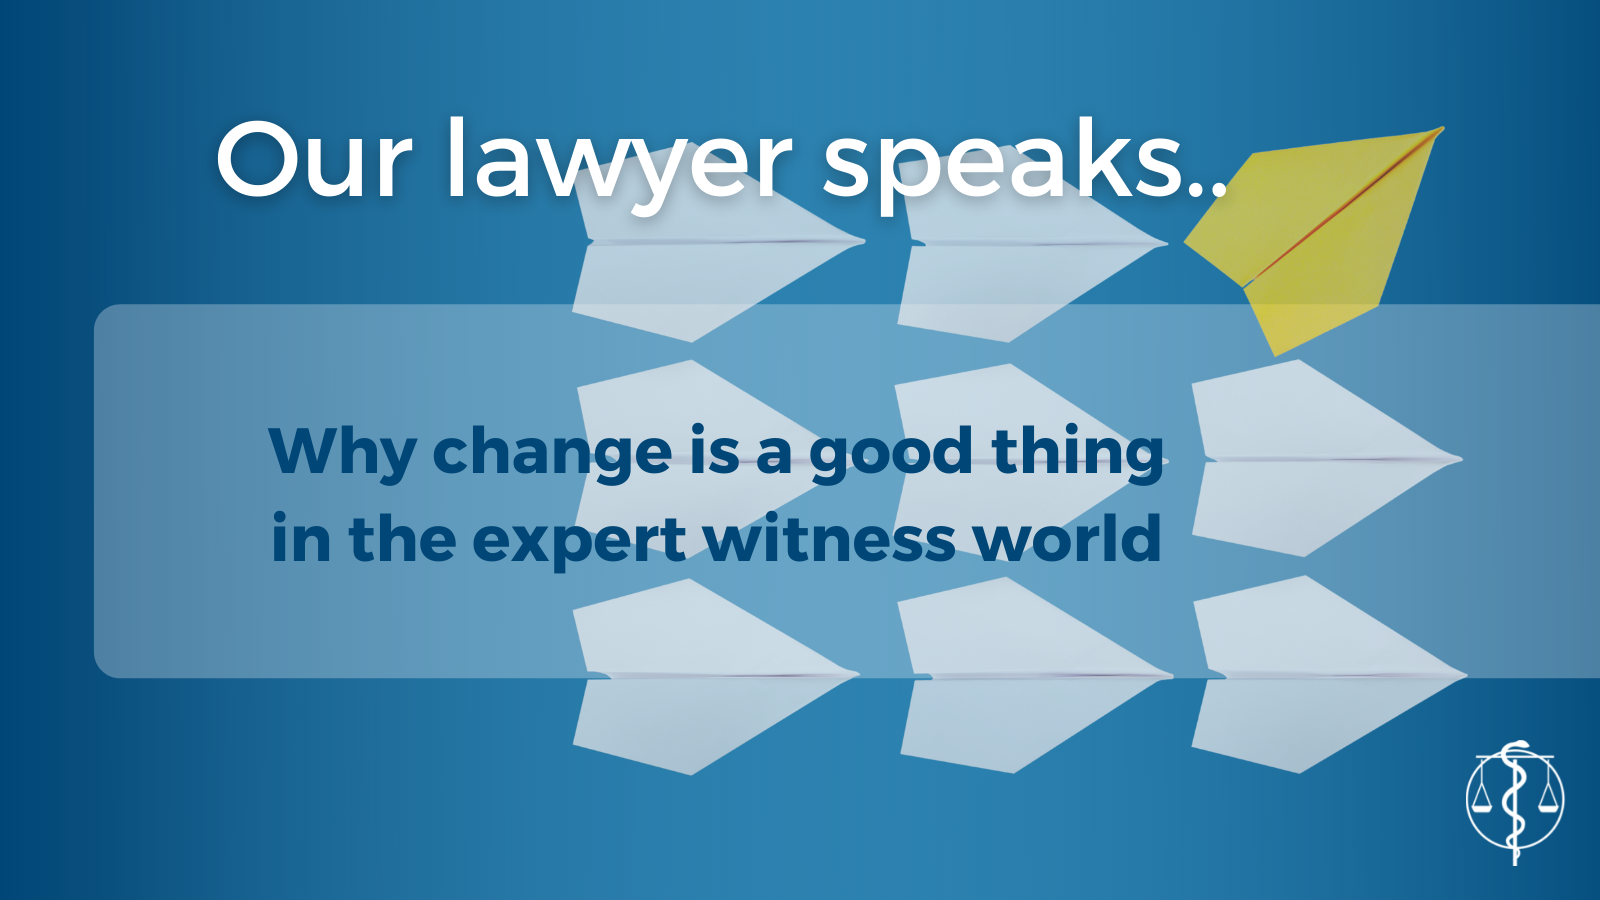 Why change is a good thing in expert witness world